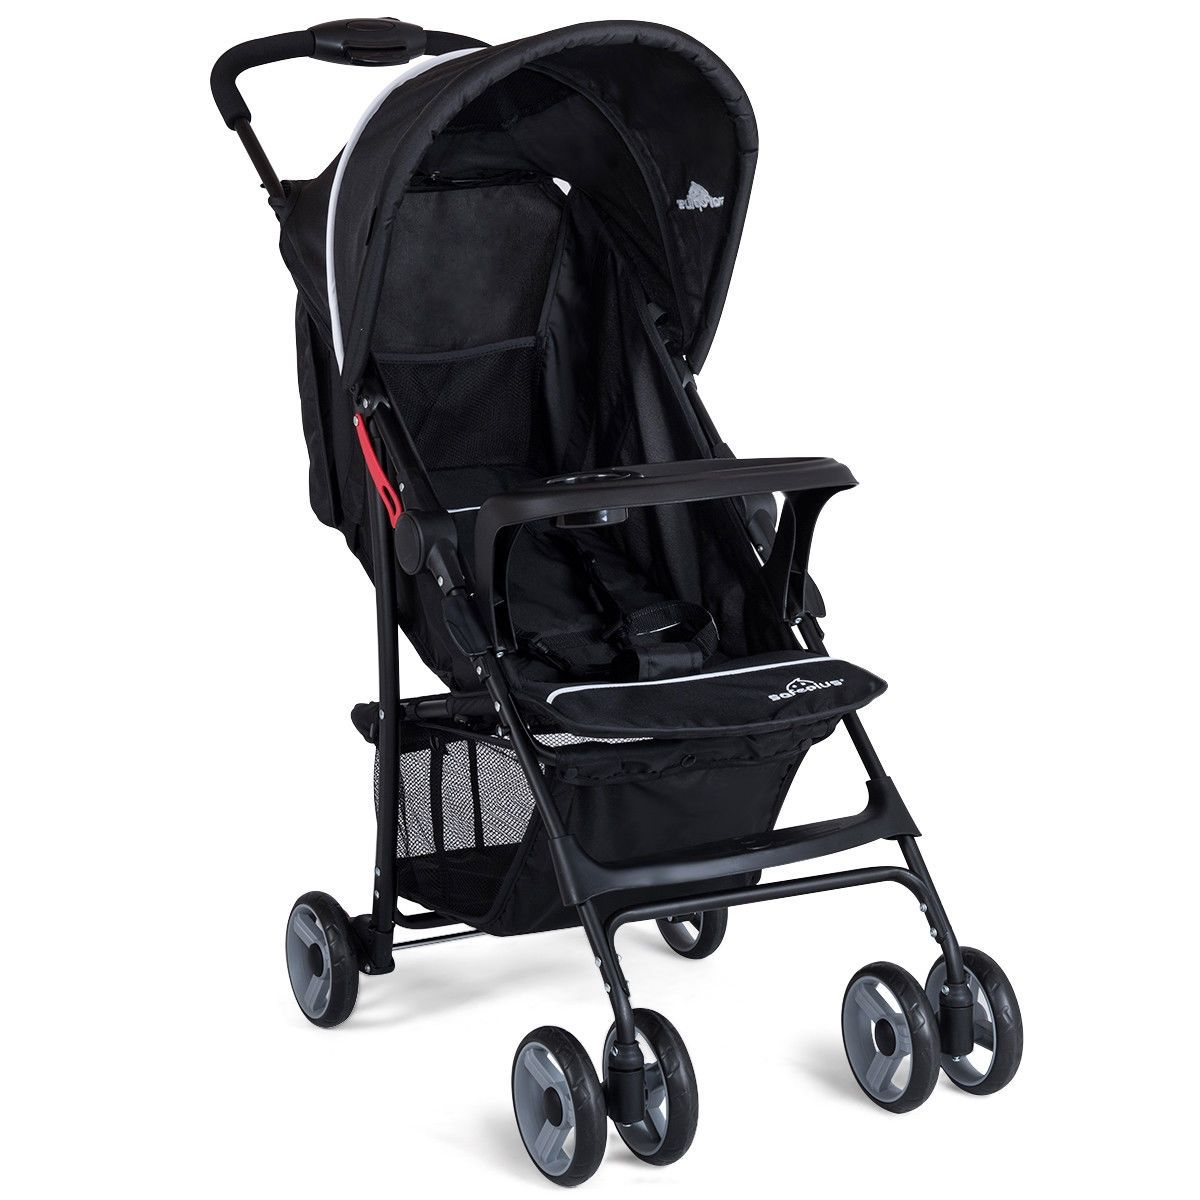 5Point Safety System Foldable Lightweight Baby Stroller